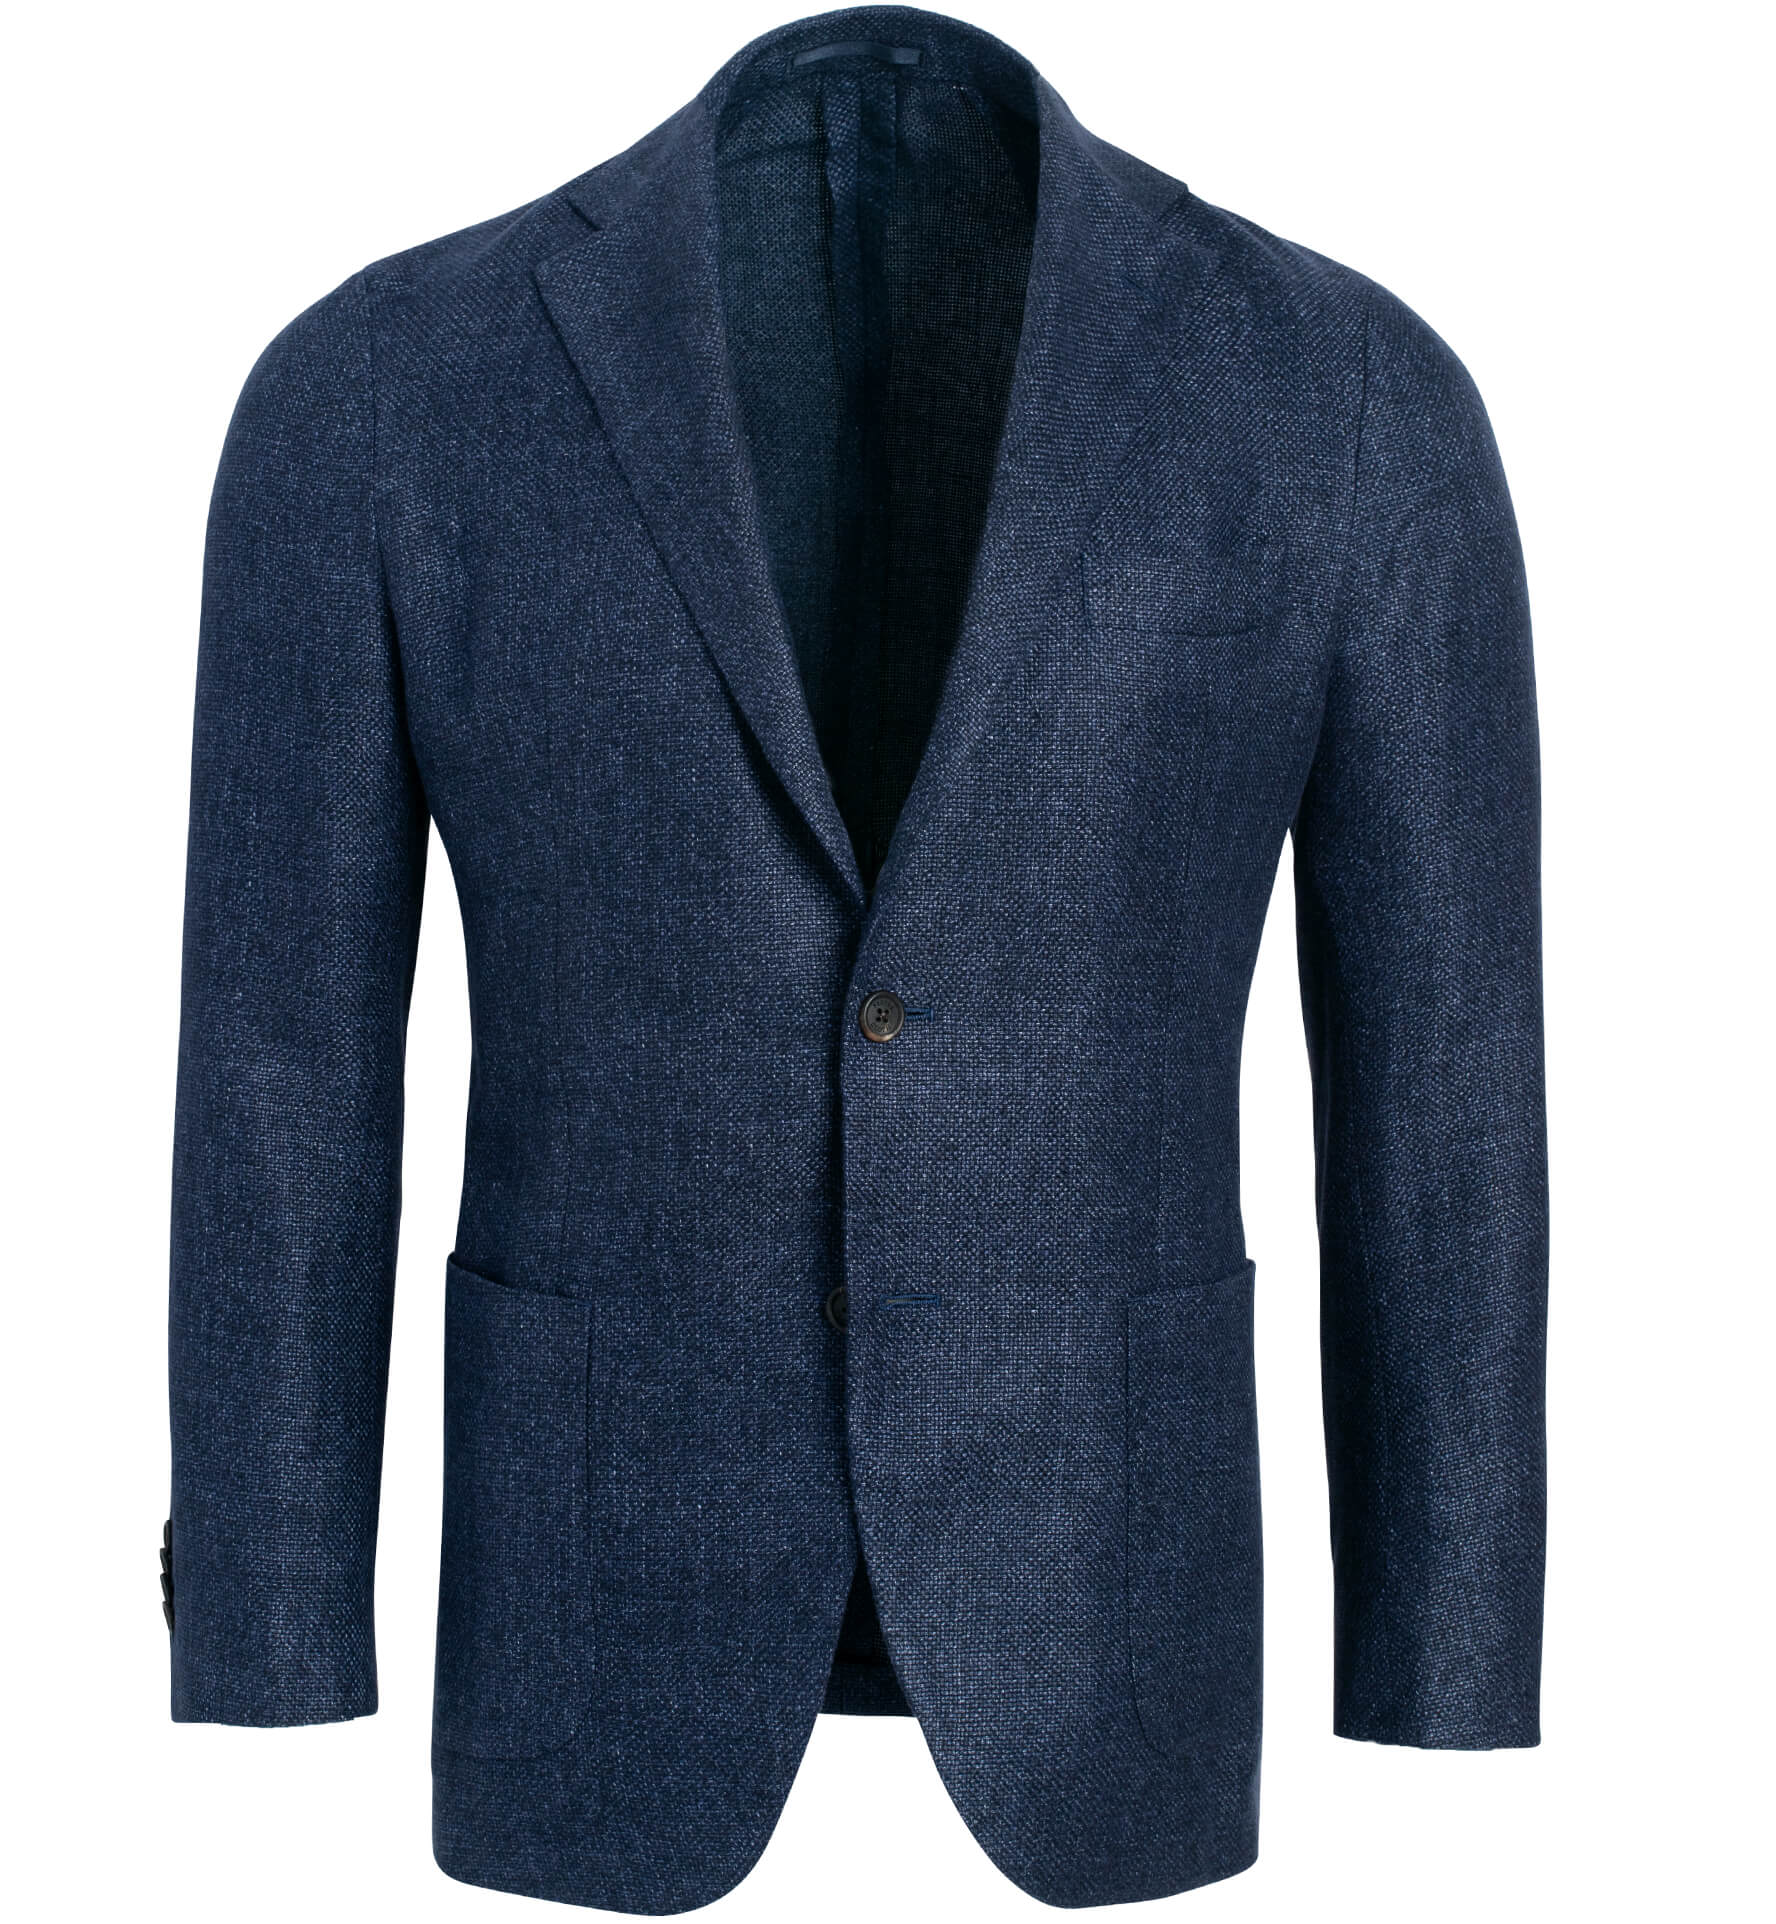 Zoom Image of Waverly Navy Hemp and Wool Basketweave Jacket